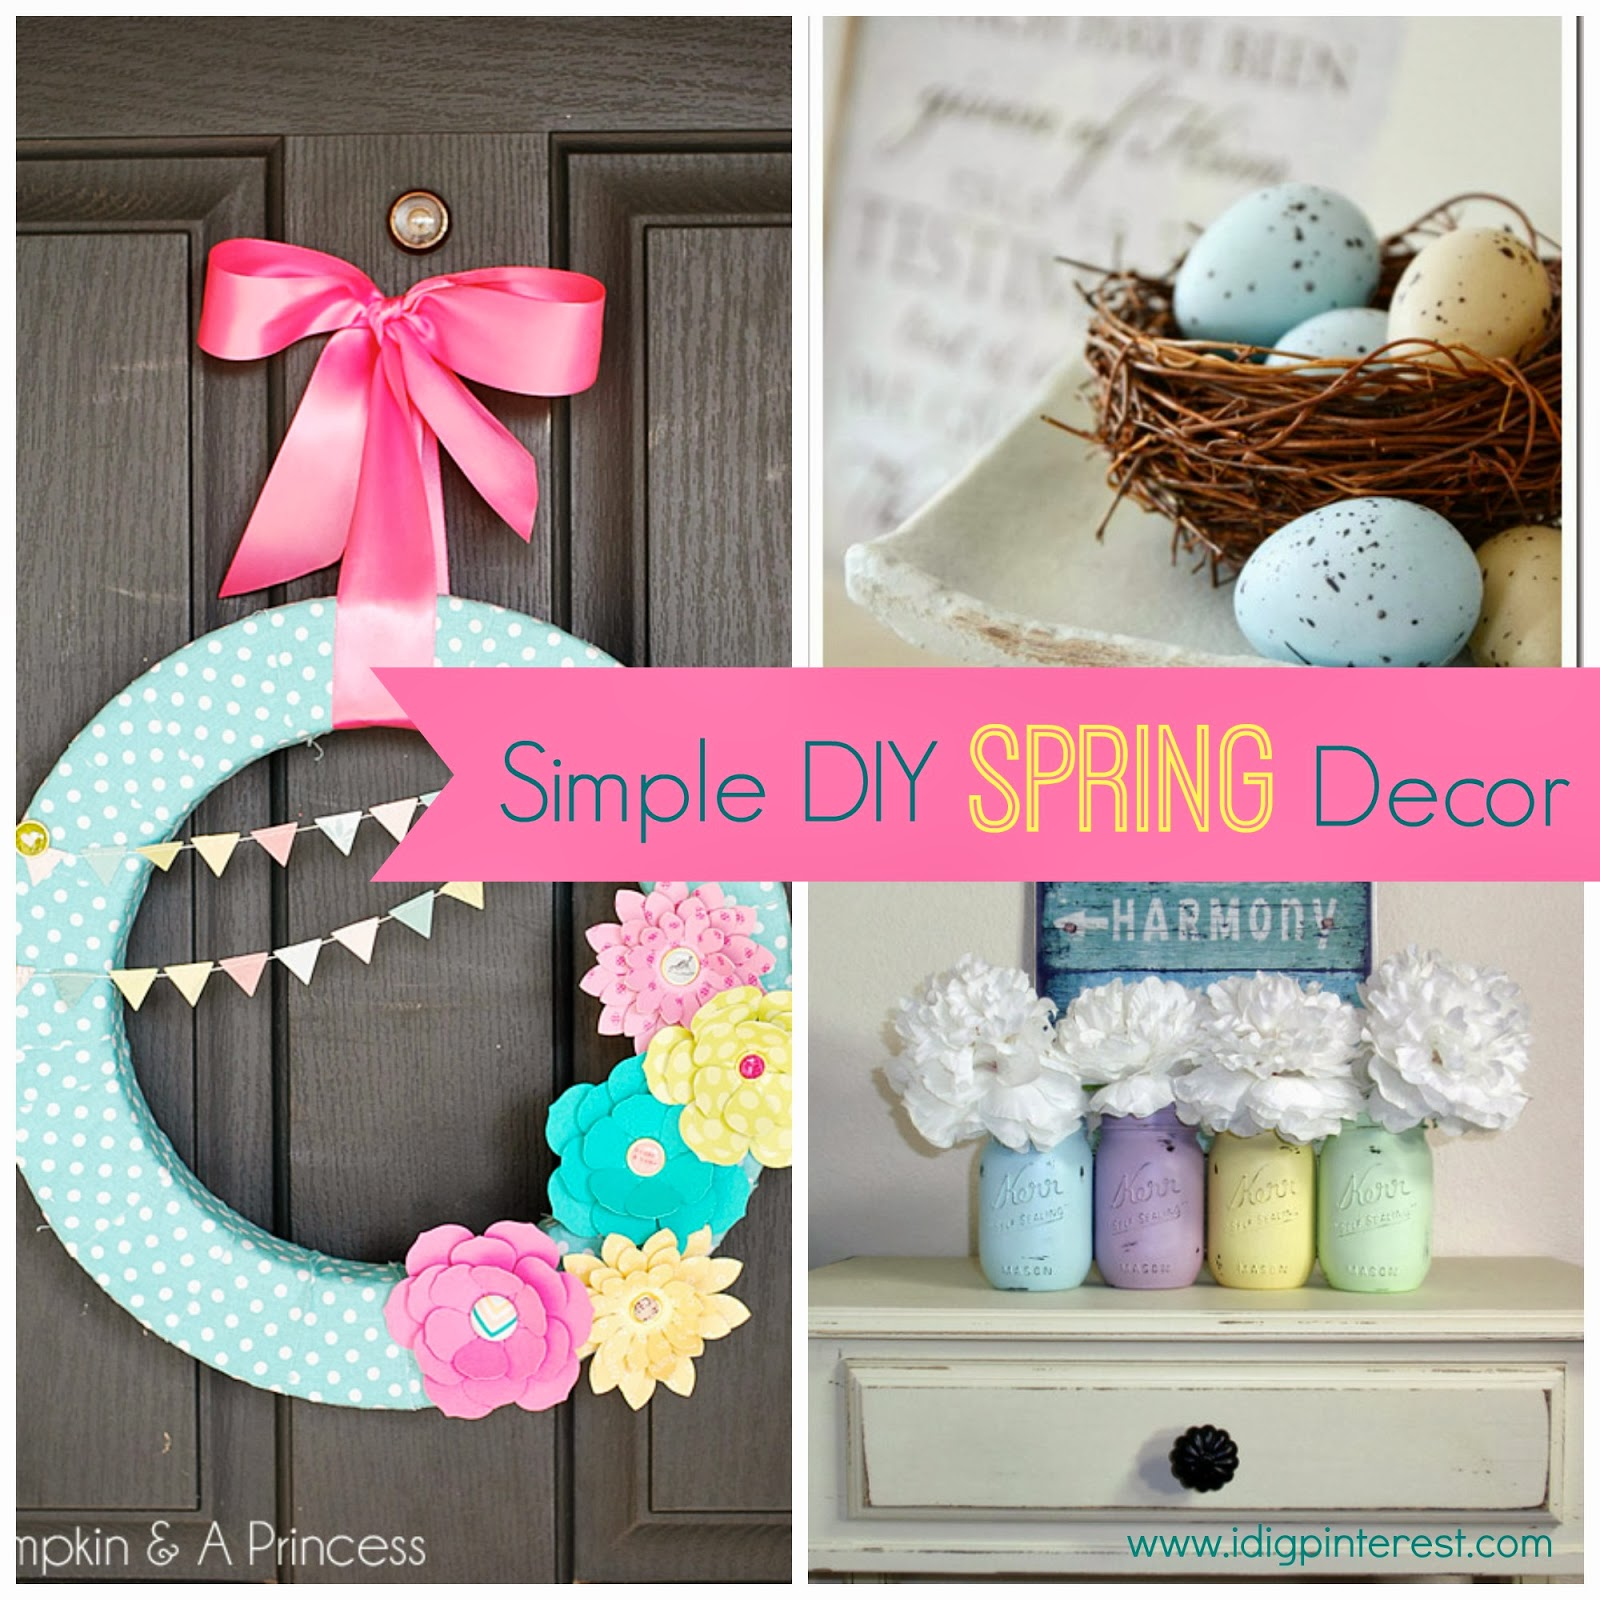 I Dig Pinterest: Simple DIY Spring Decor Ideas